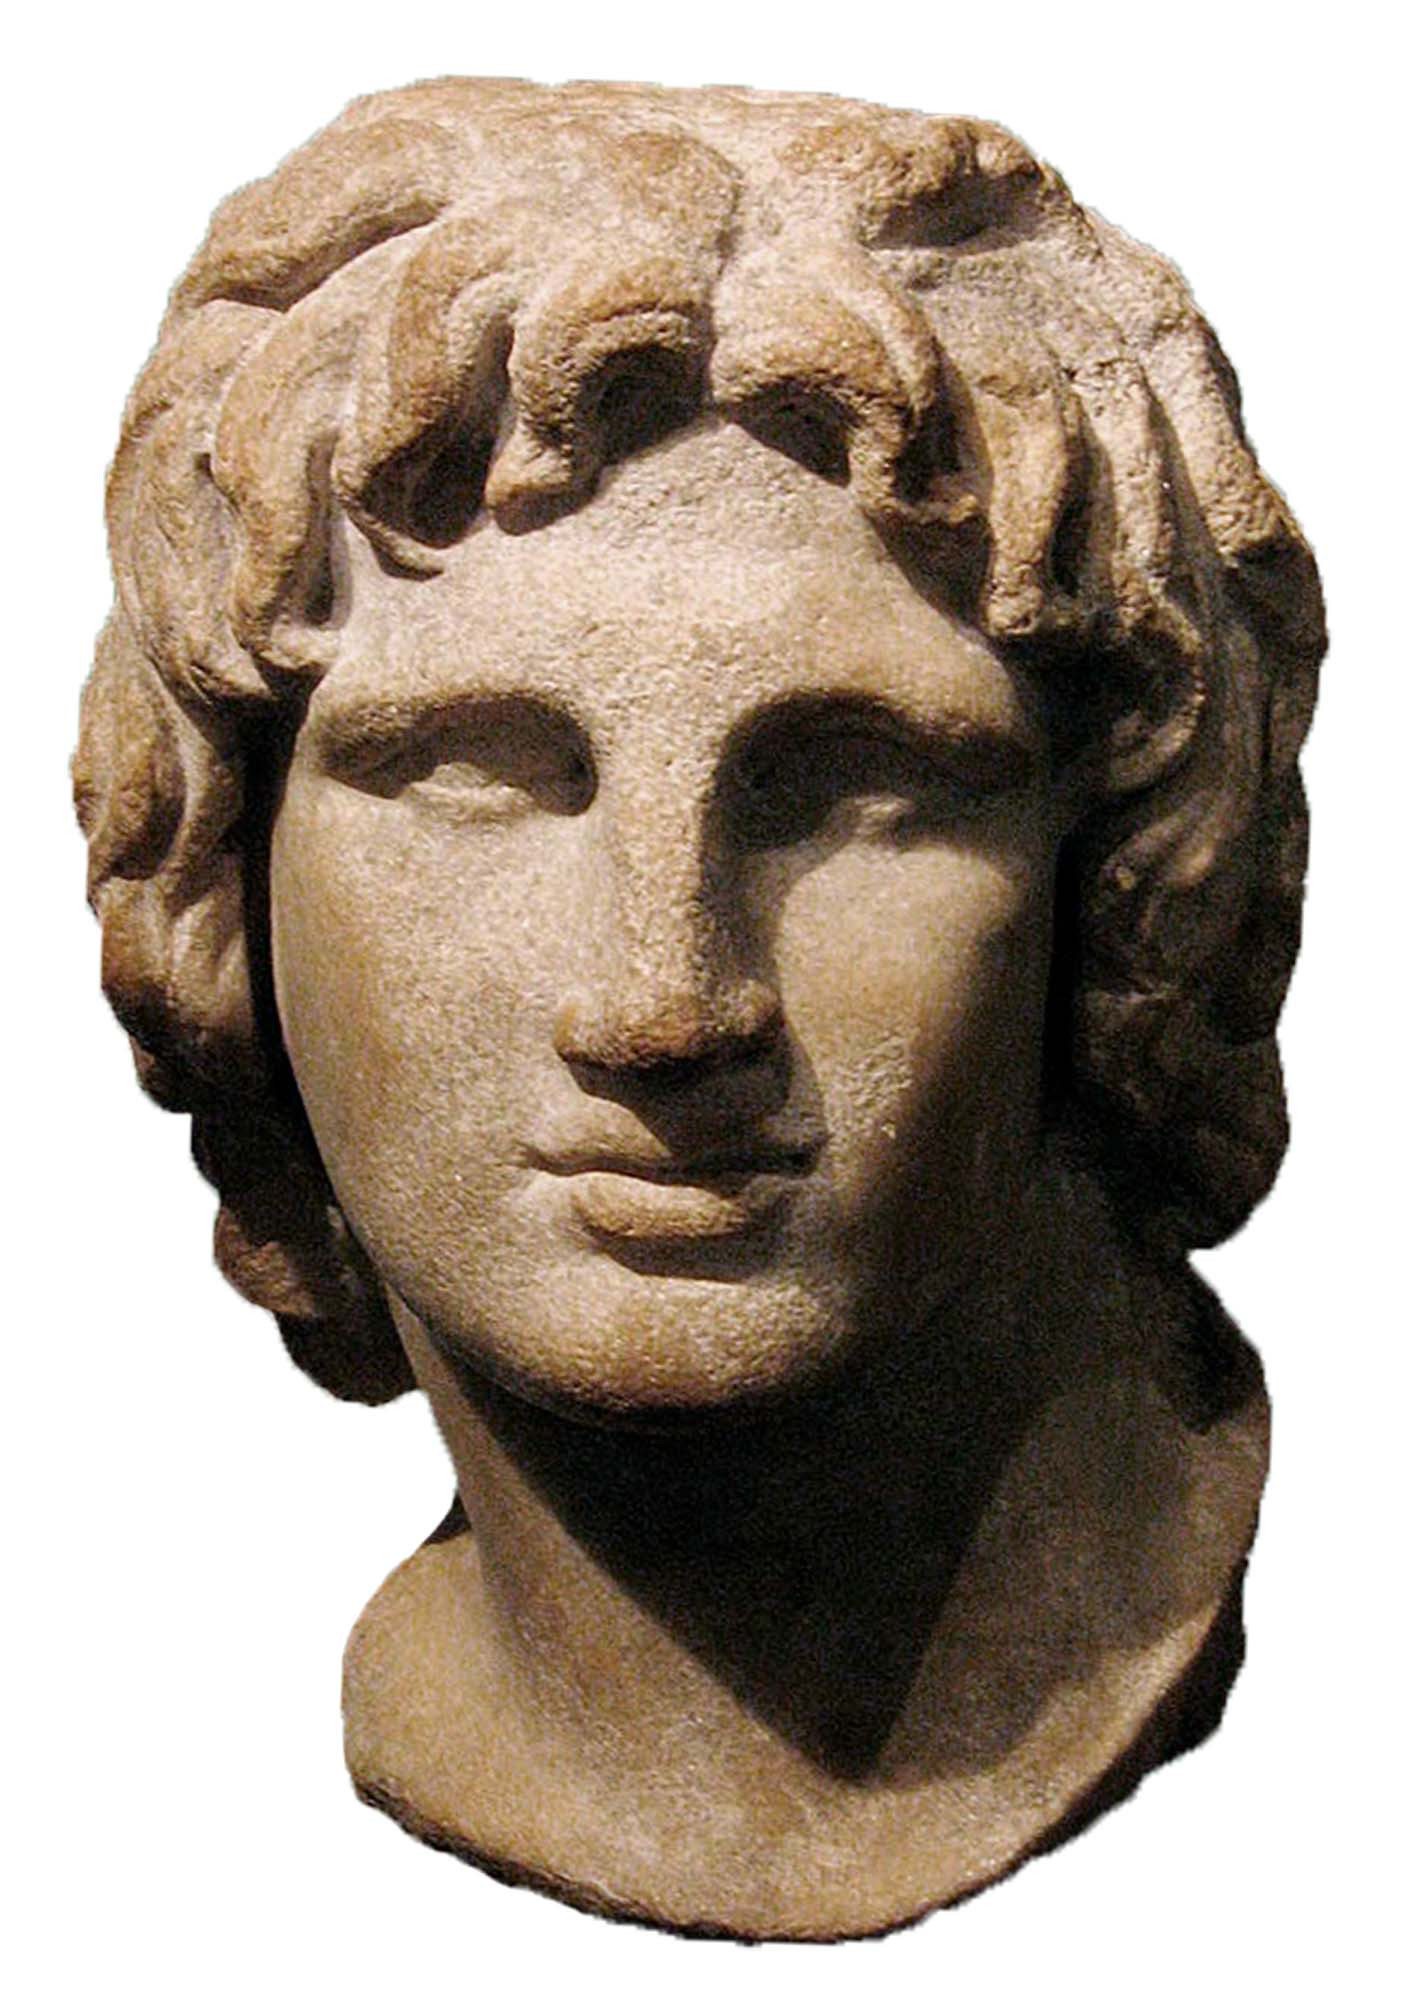 Alexander the Great, Bust, Hellenic, Marble, 2nd to 1st c. BCE, British Museum, London, UK